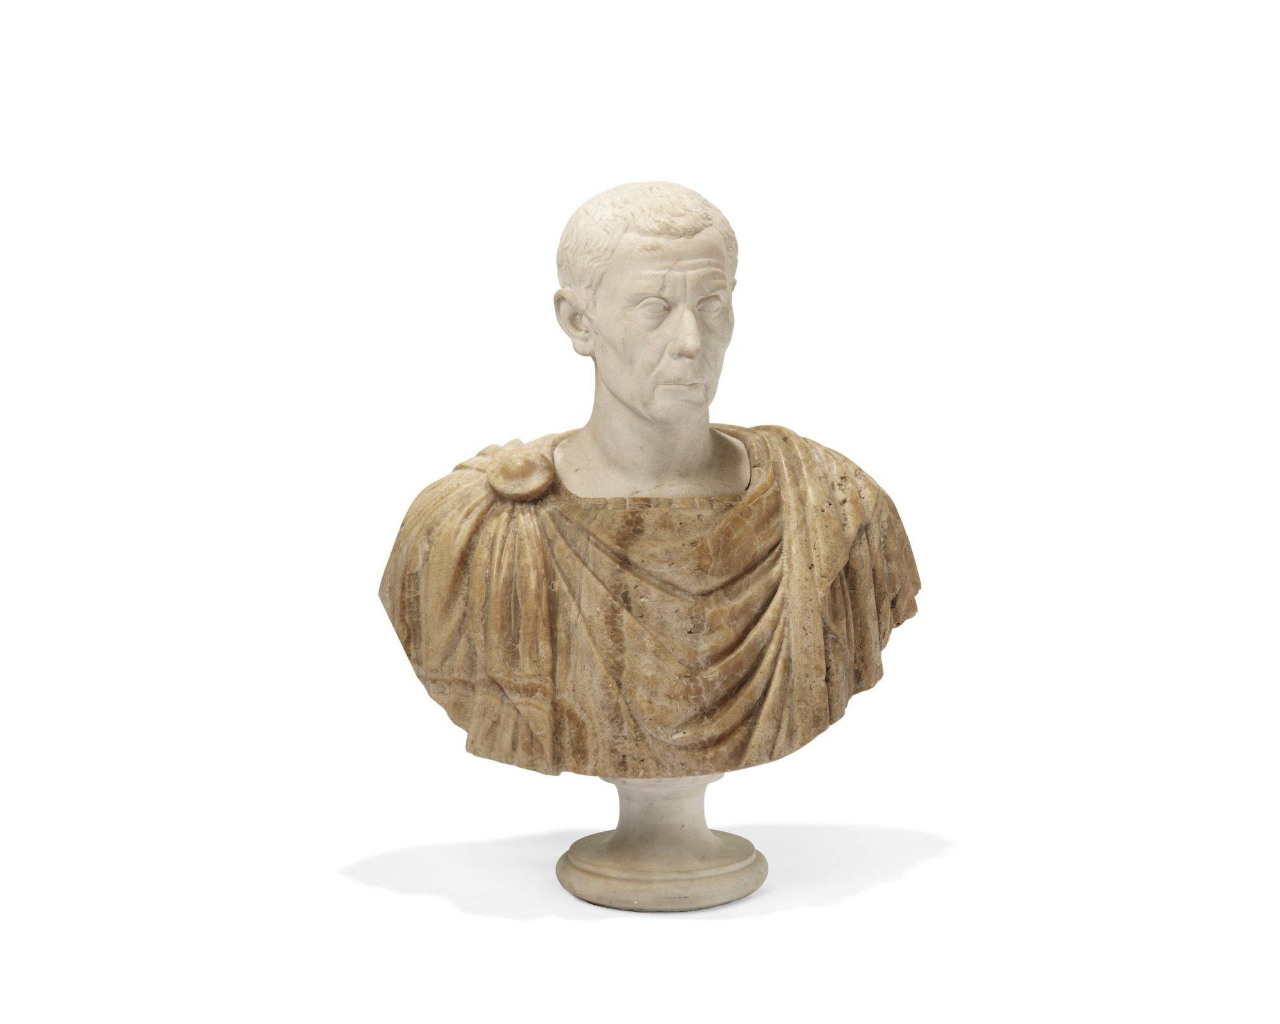 A Xix Century Marble Bust Of Julius Caesar Dressed With A Chlamyde In Sienna Marble On A Typical Base H 75 Cm Marble Bust Sculpture Art